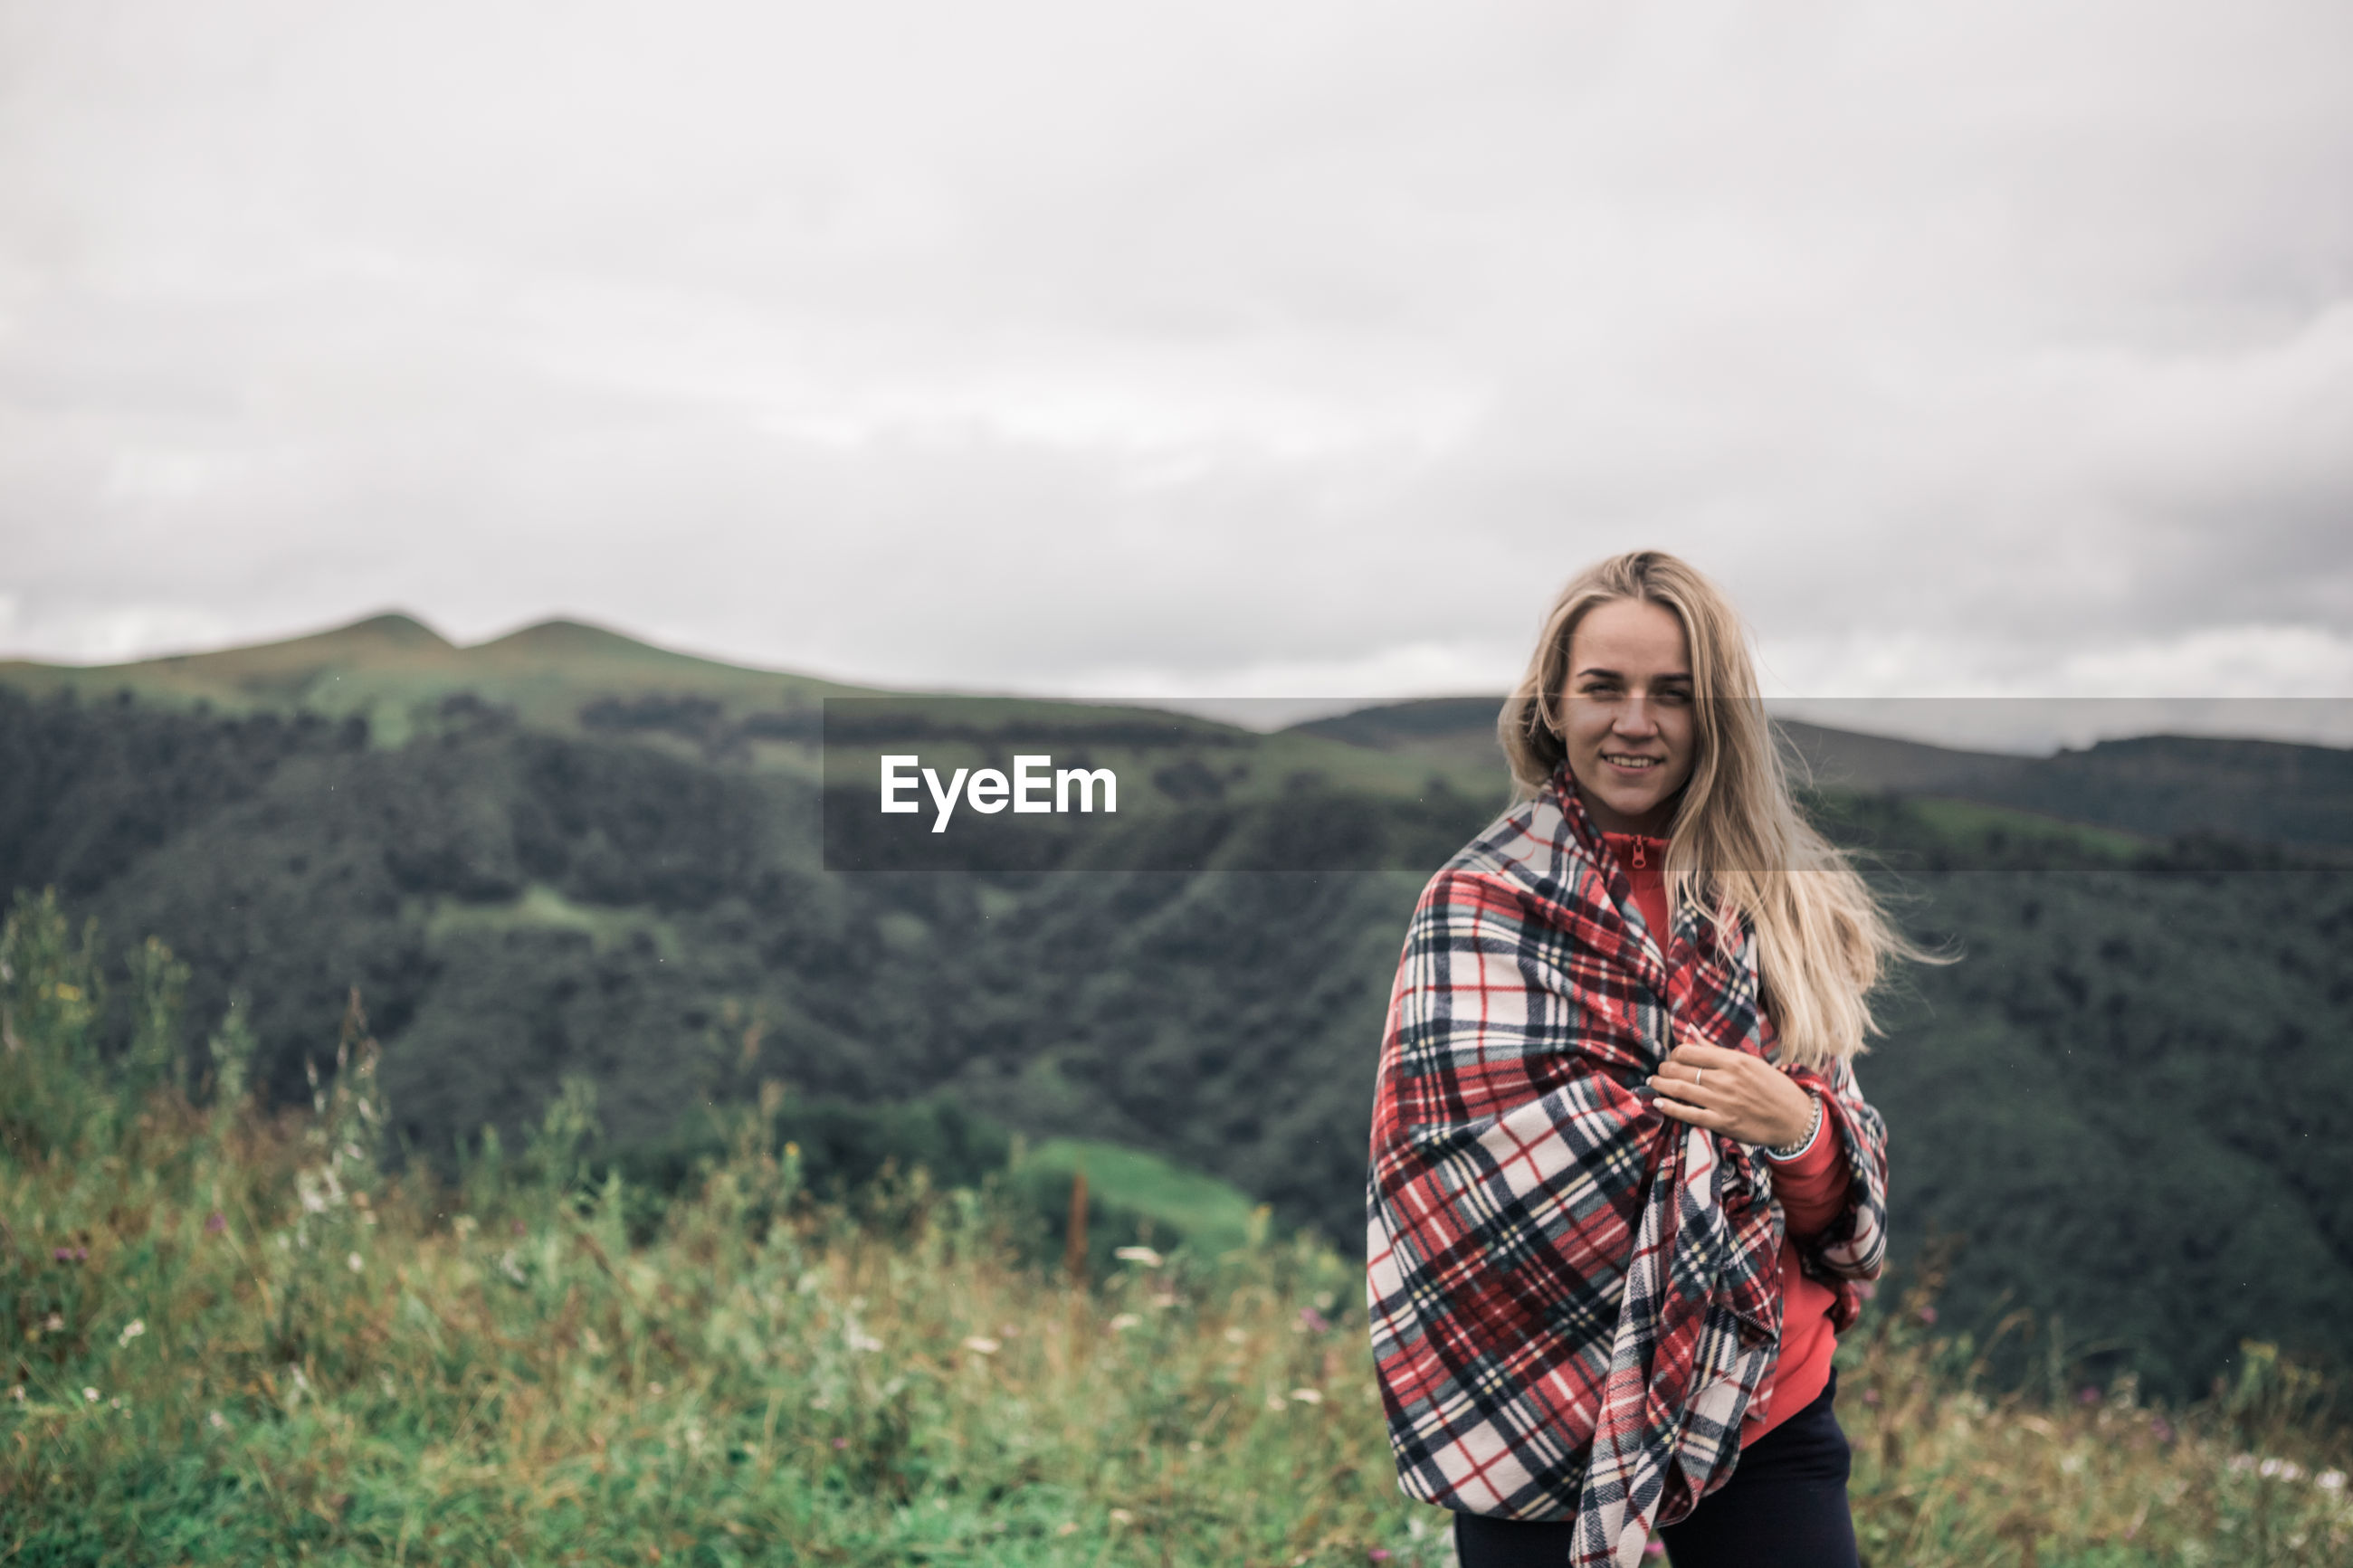 Portrait of smiling woman with blanket standing on mountain against sky